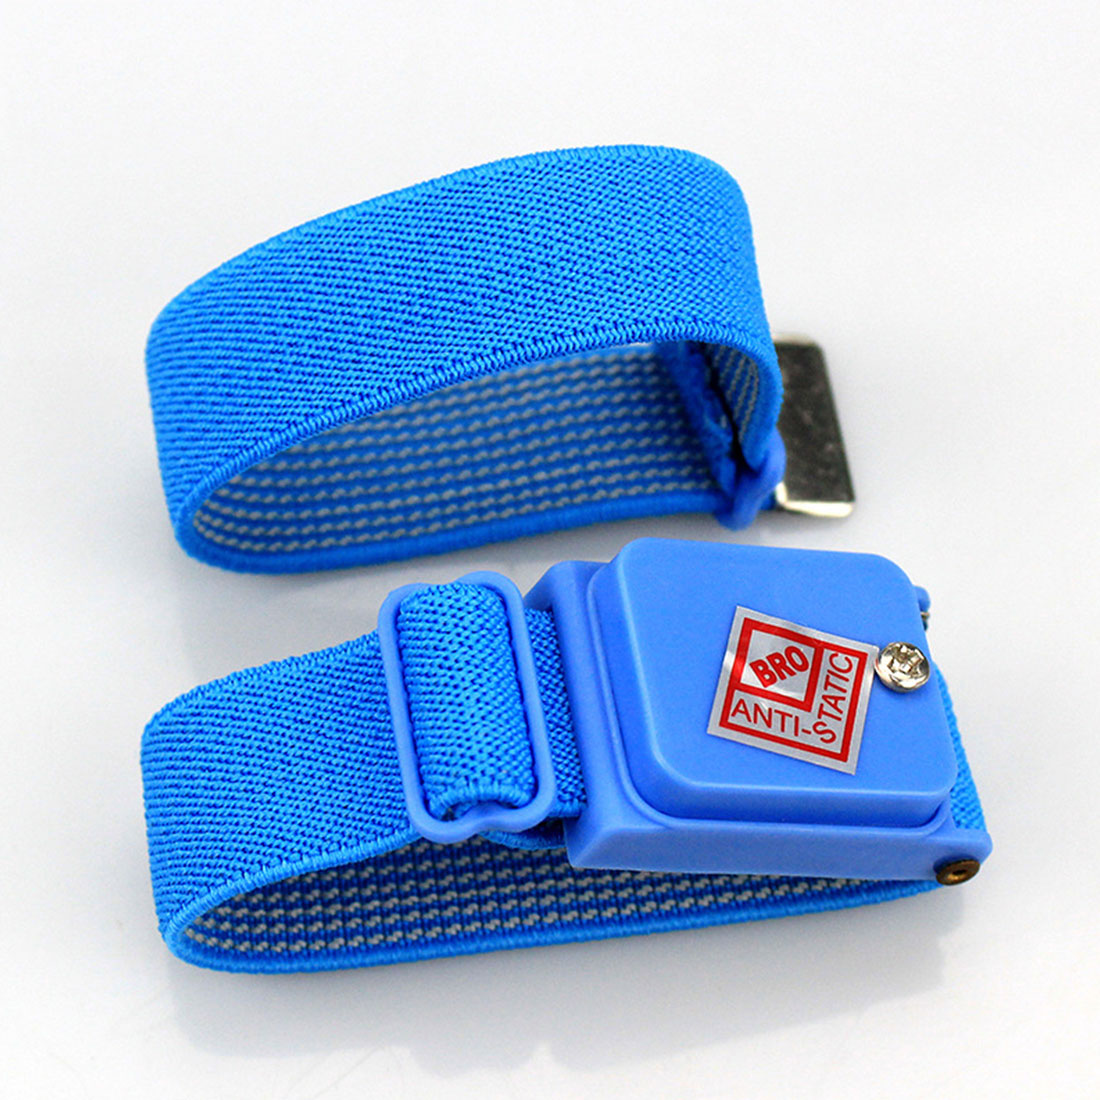 Hot ESD Anti Static Cordless Wrist Strap Elastic Band For Sensitive Electronics Repair Tools